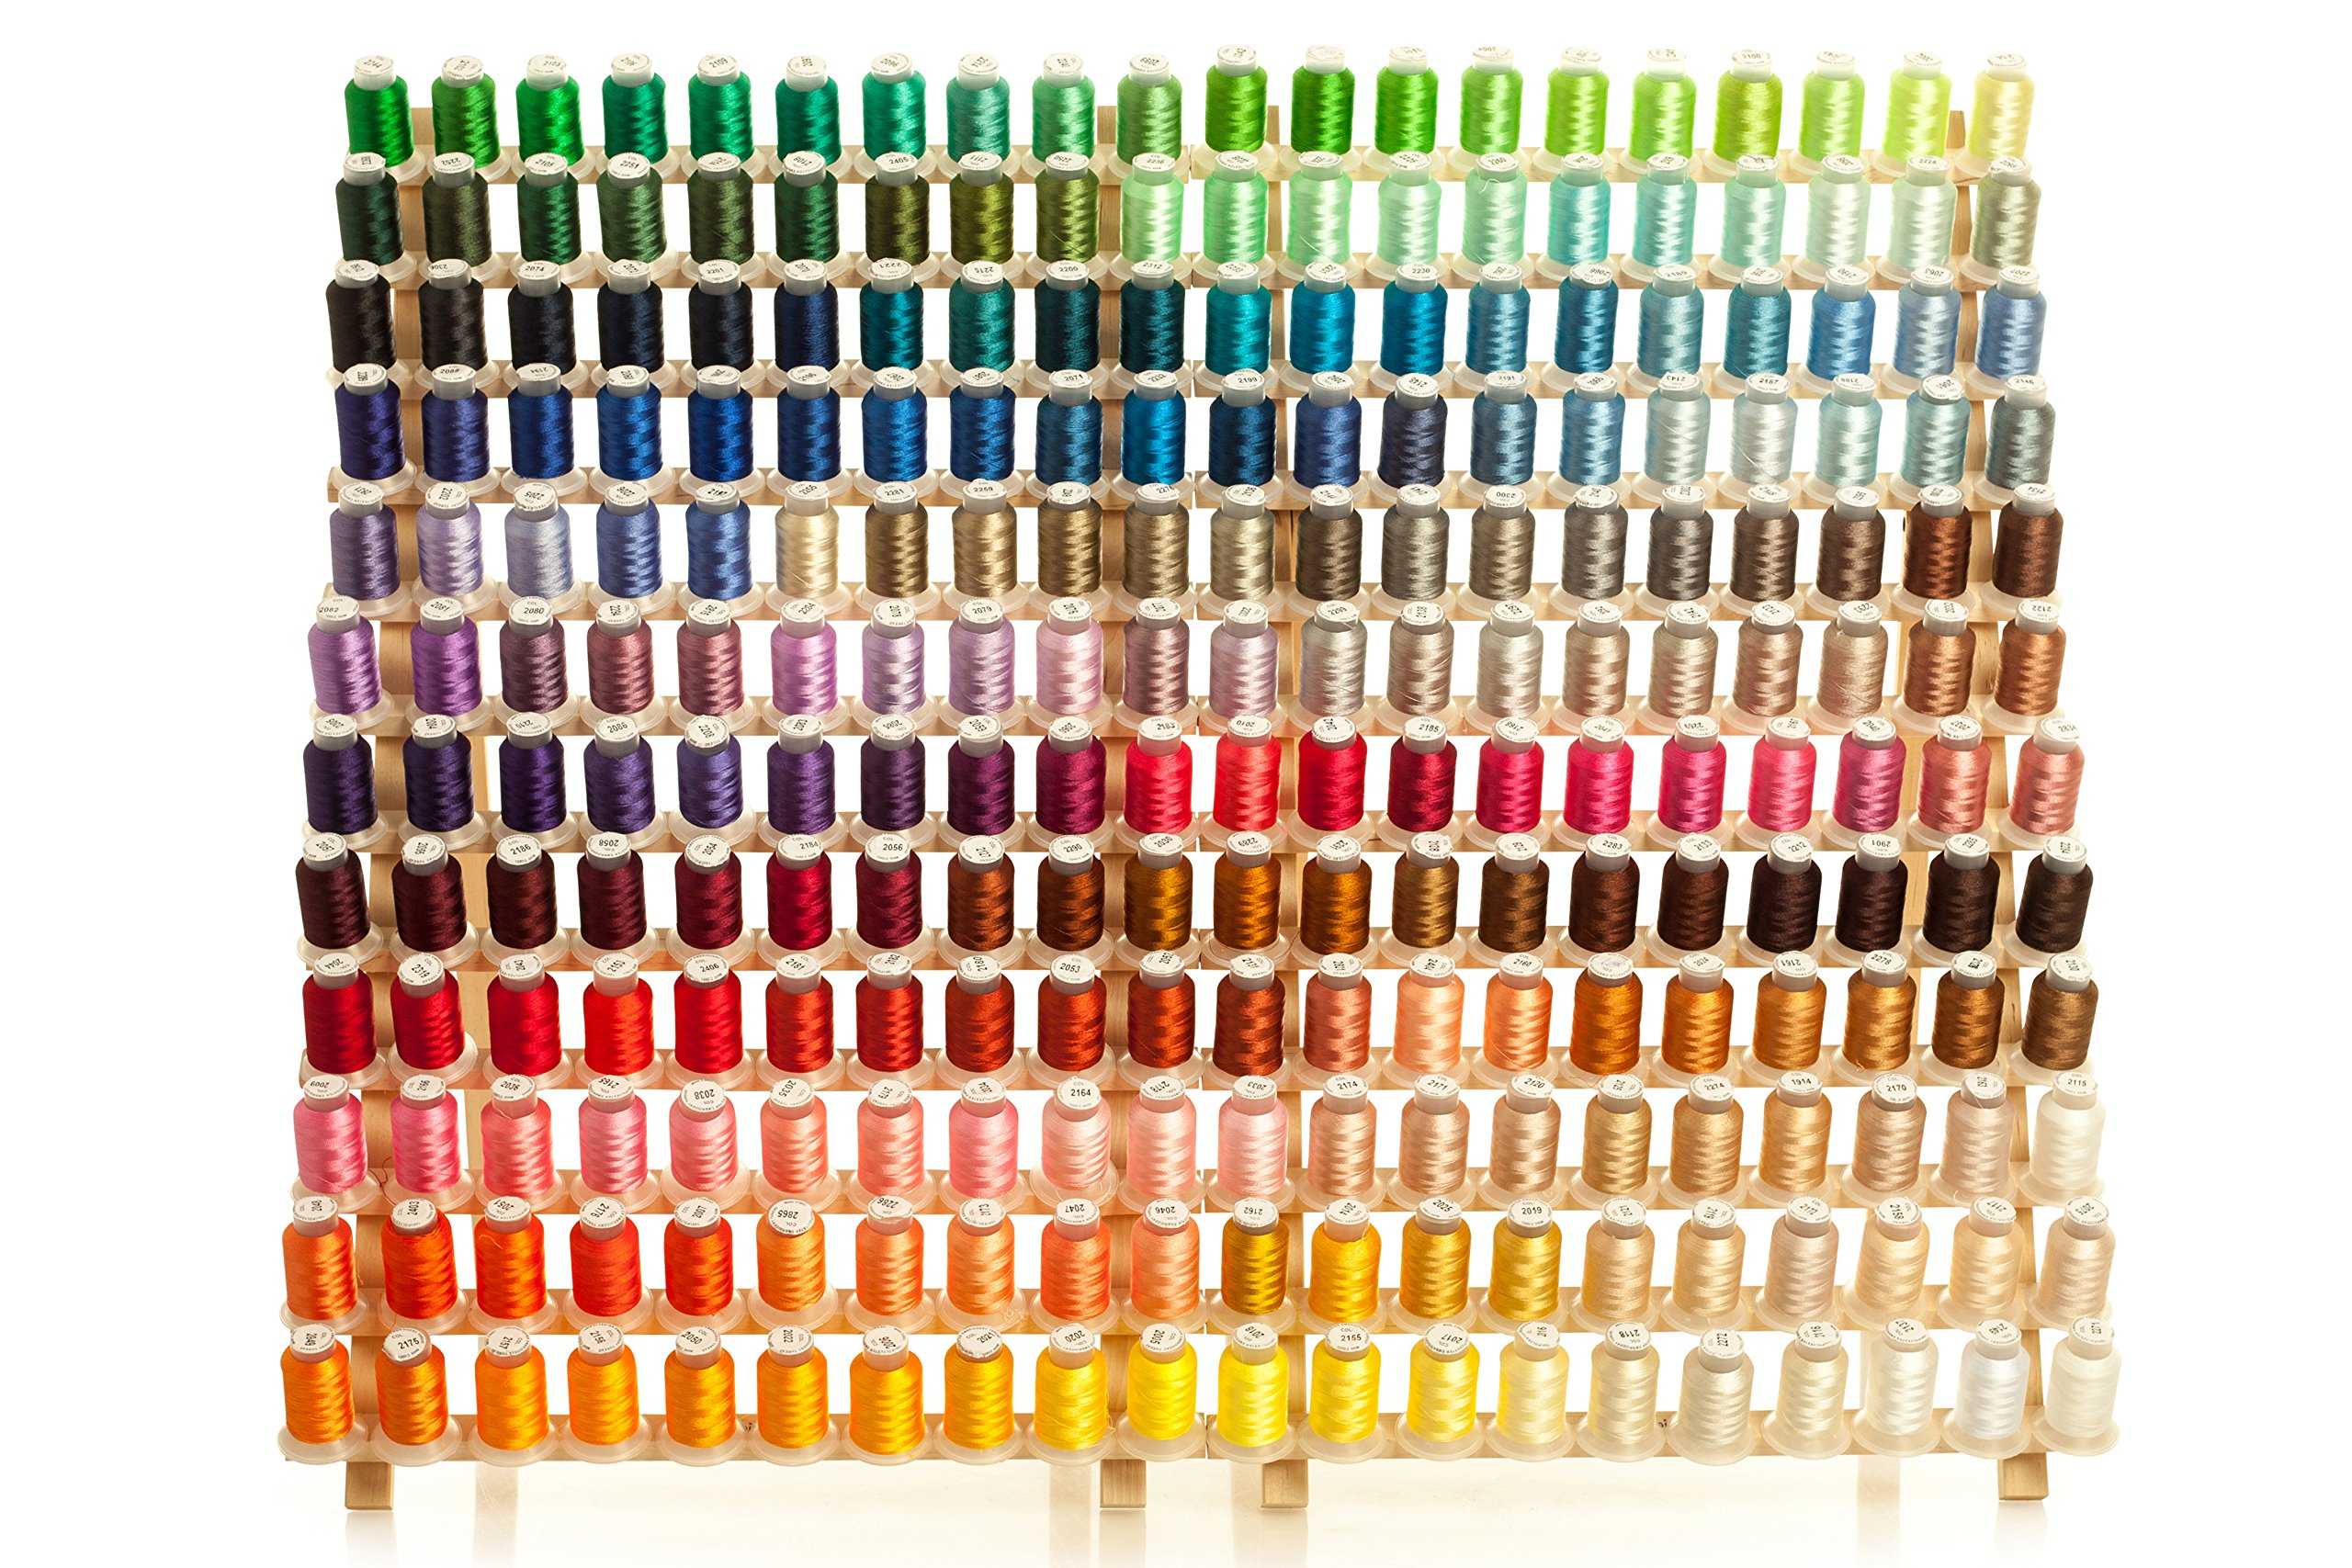 Mega Kit 260 Spools Polyester Embroidery Machine Thread by Kolors Embroidery